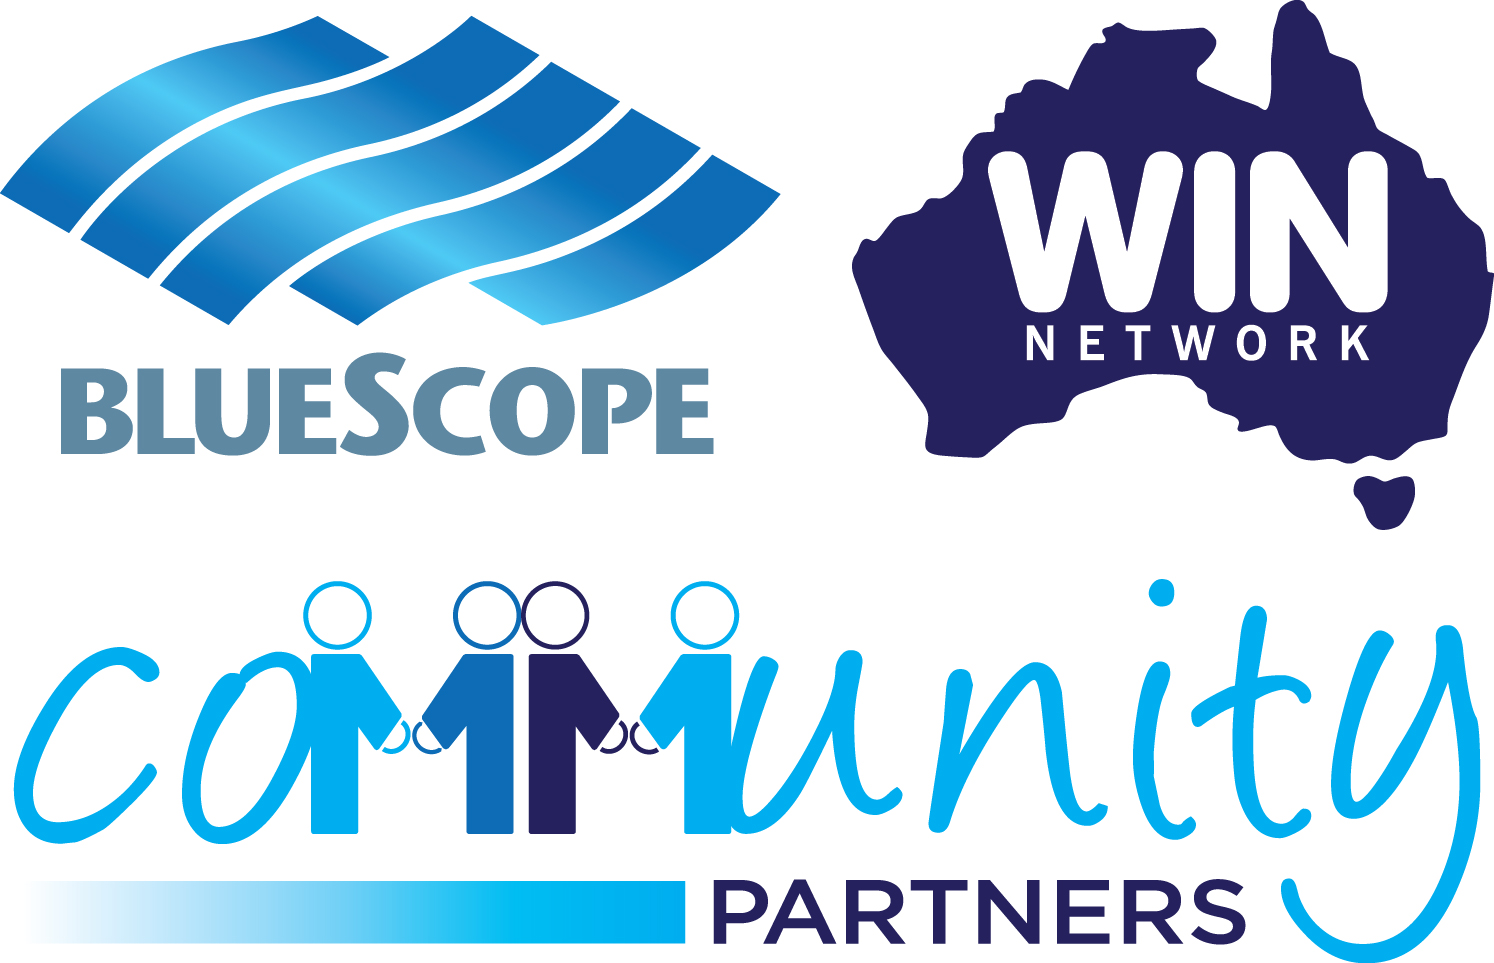 BlueScopeWIN Community Partners Program